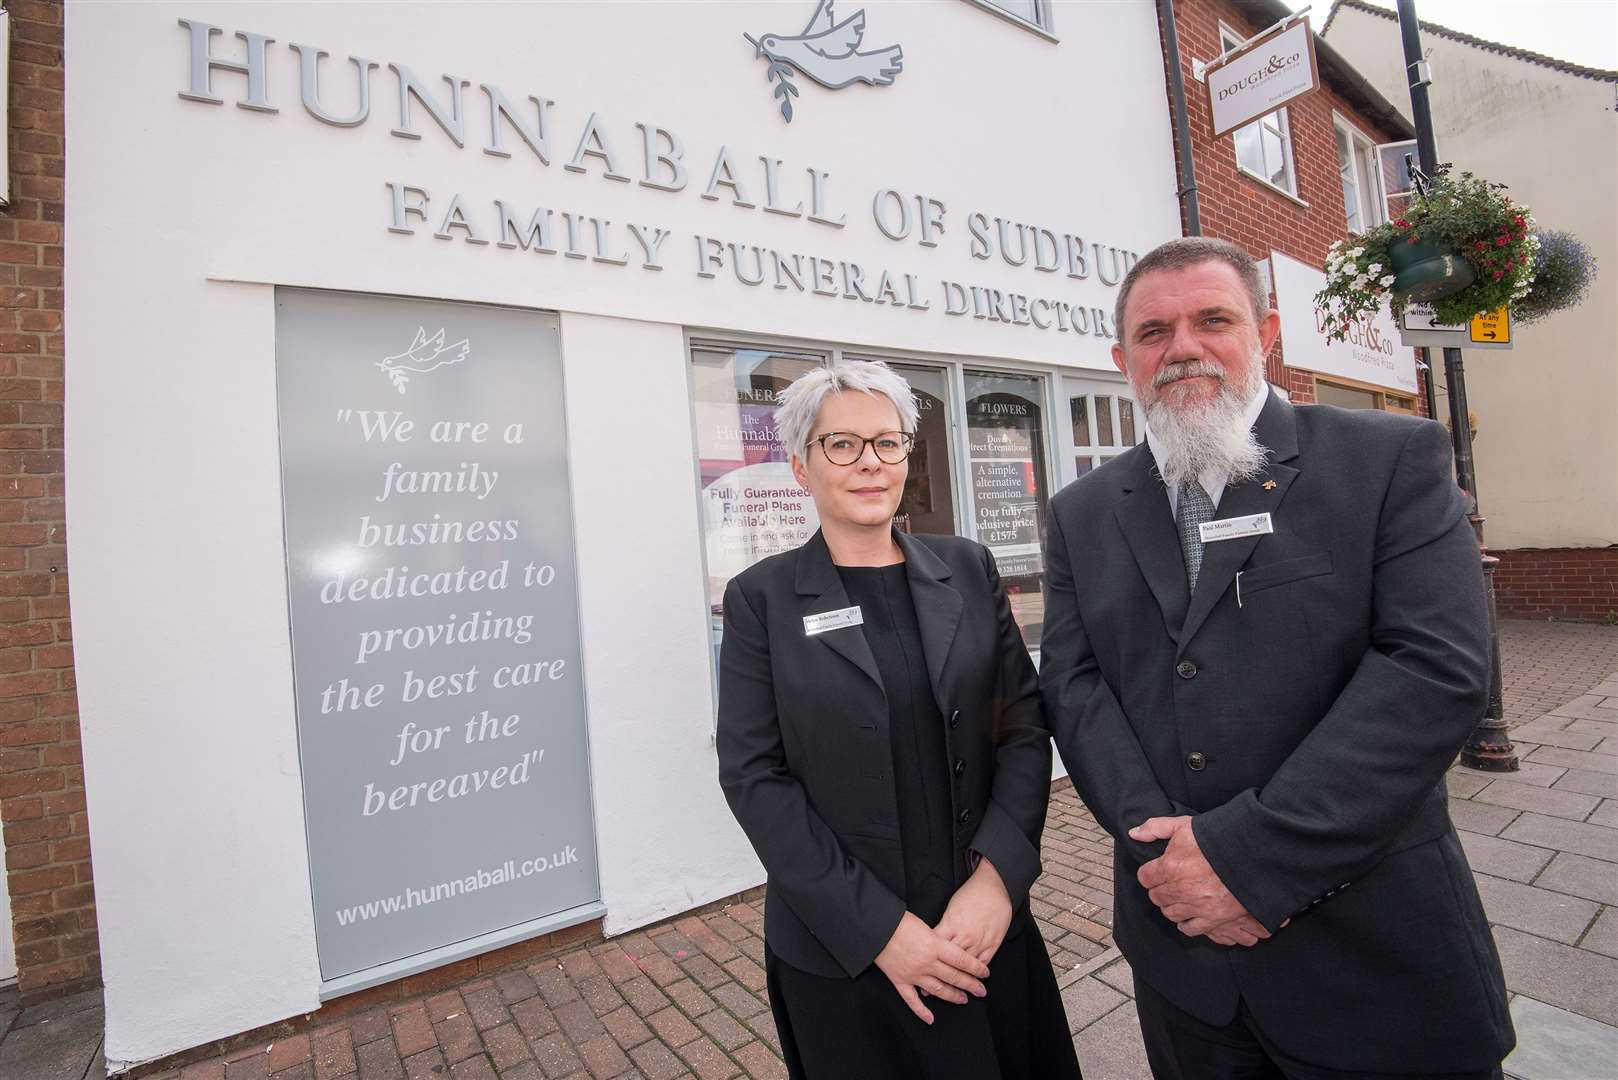 Hunnaball of Sudbury, New House, 62a North Street, Sudbury.Hunnaball Family Funeral Group..The company have just completed a renovation and upgrade of their premises in North .Street. .Helen Robertson, community funeral director and Paul Martin, their area manager. Picture by Mark Westley. (15509045)